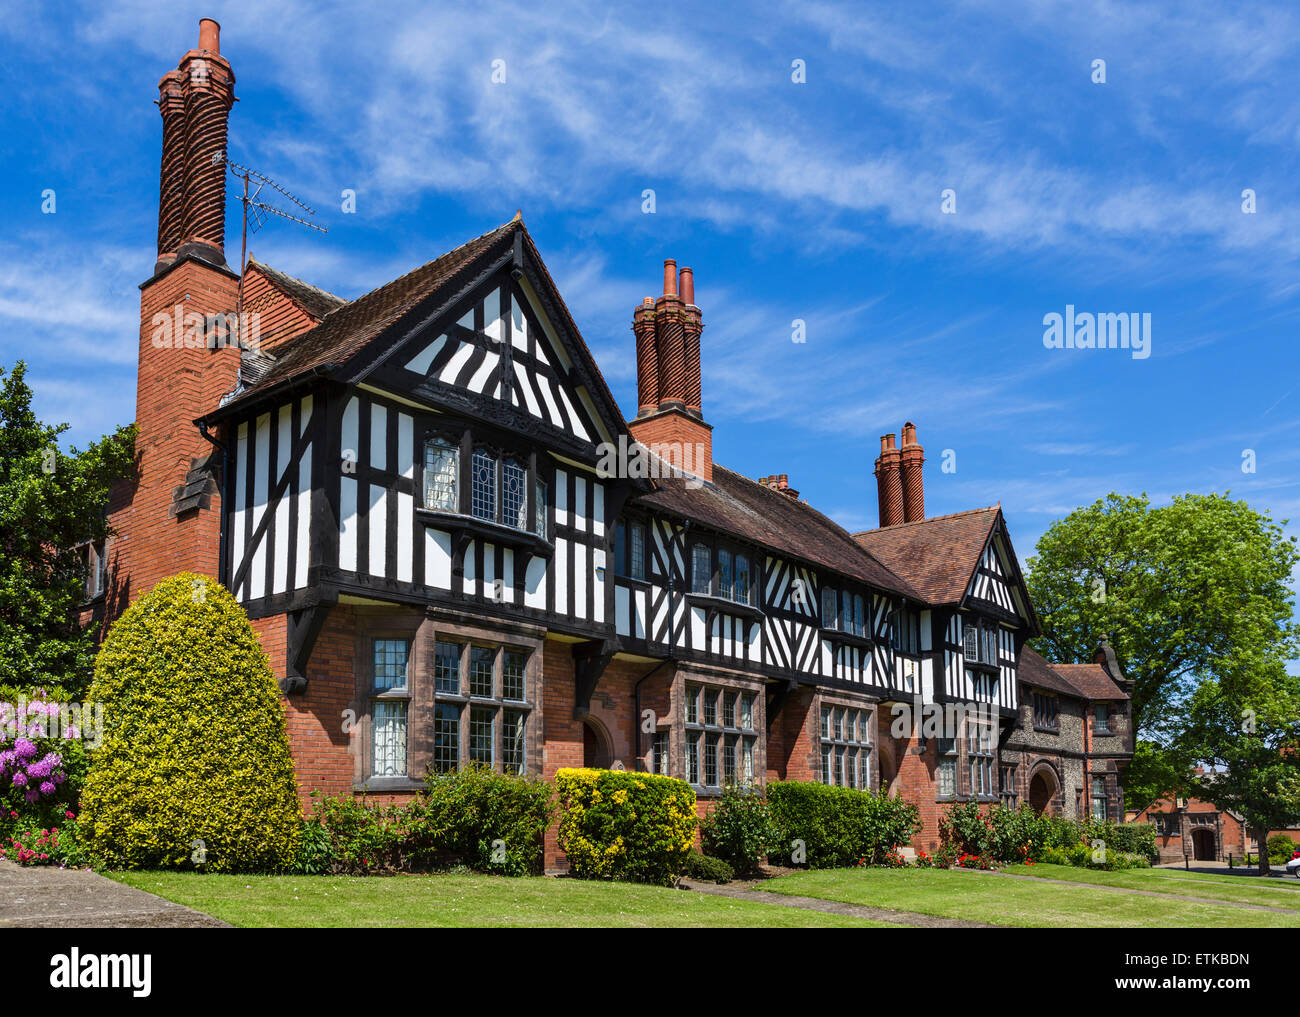 Houses on Park Road in the model village of Port Sunlight, Wirral Peninsula, Merseyside, England, UK - Stock Image